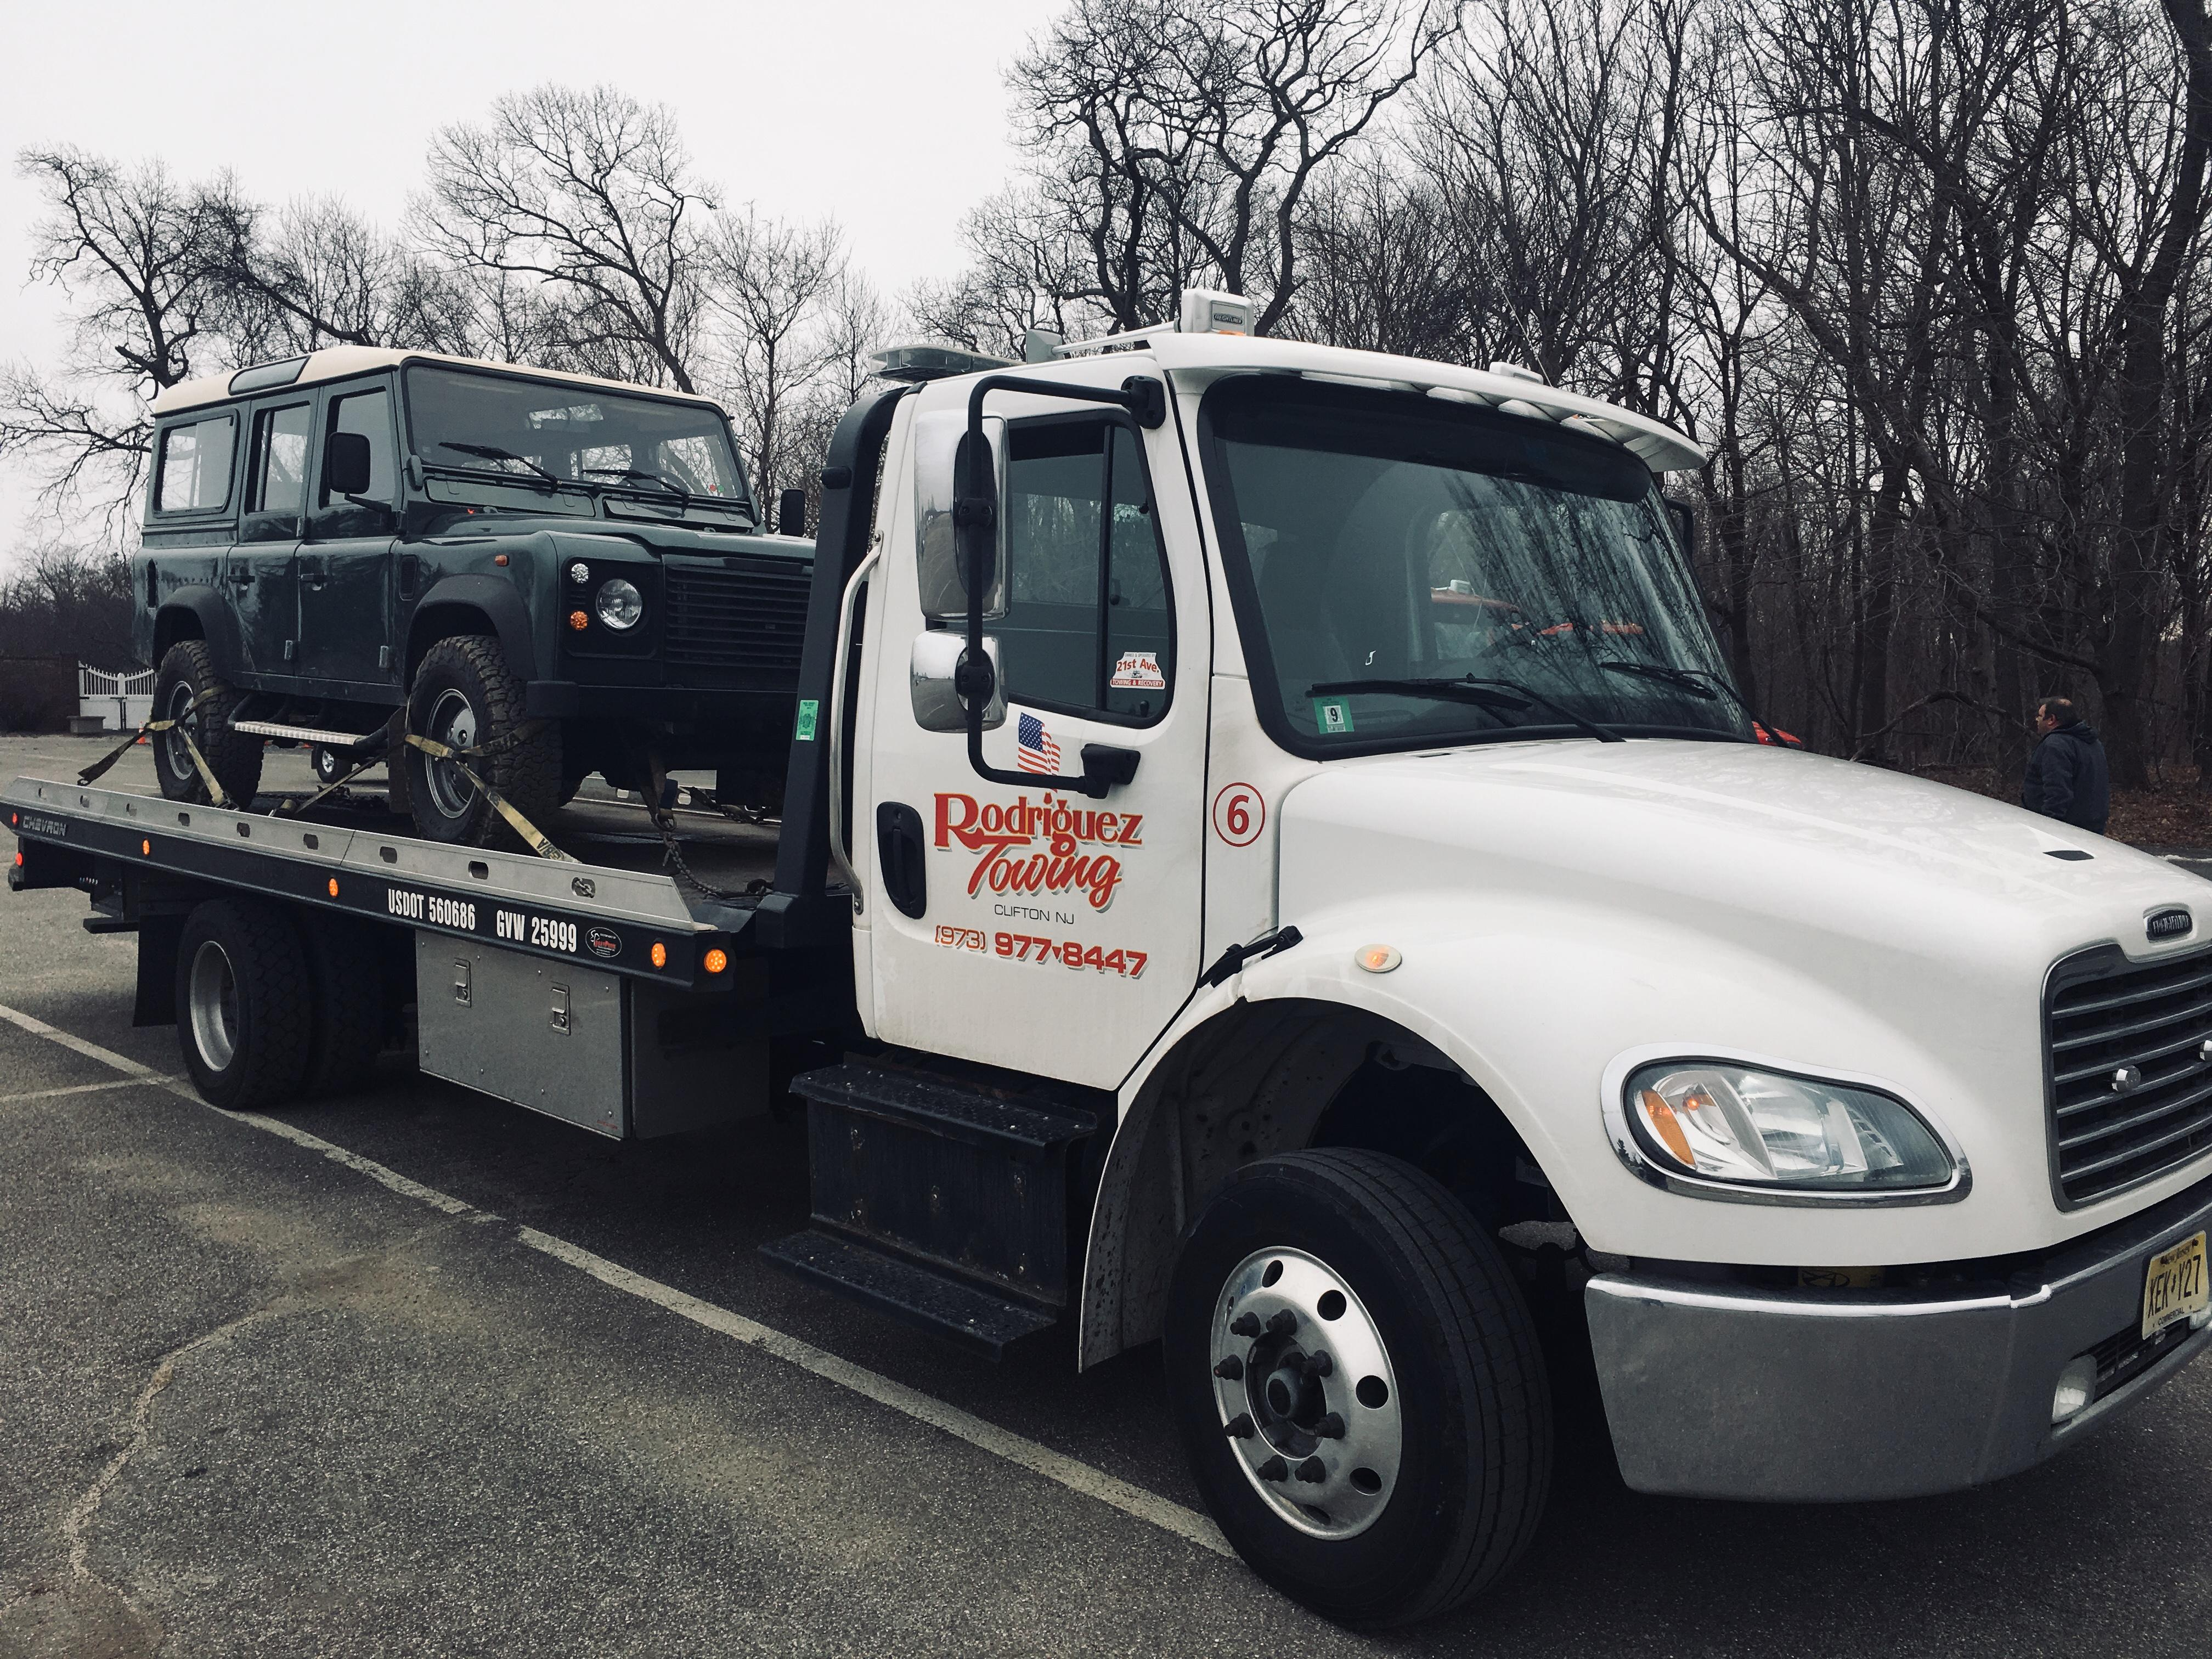 Rodriguez Towing